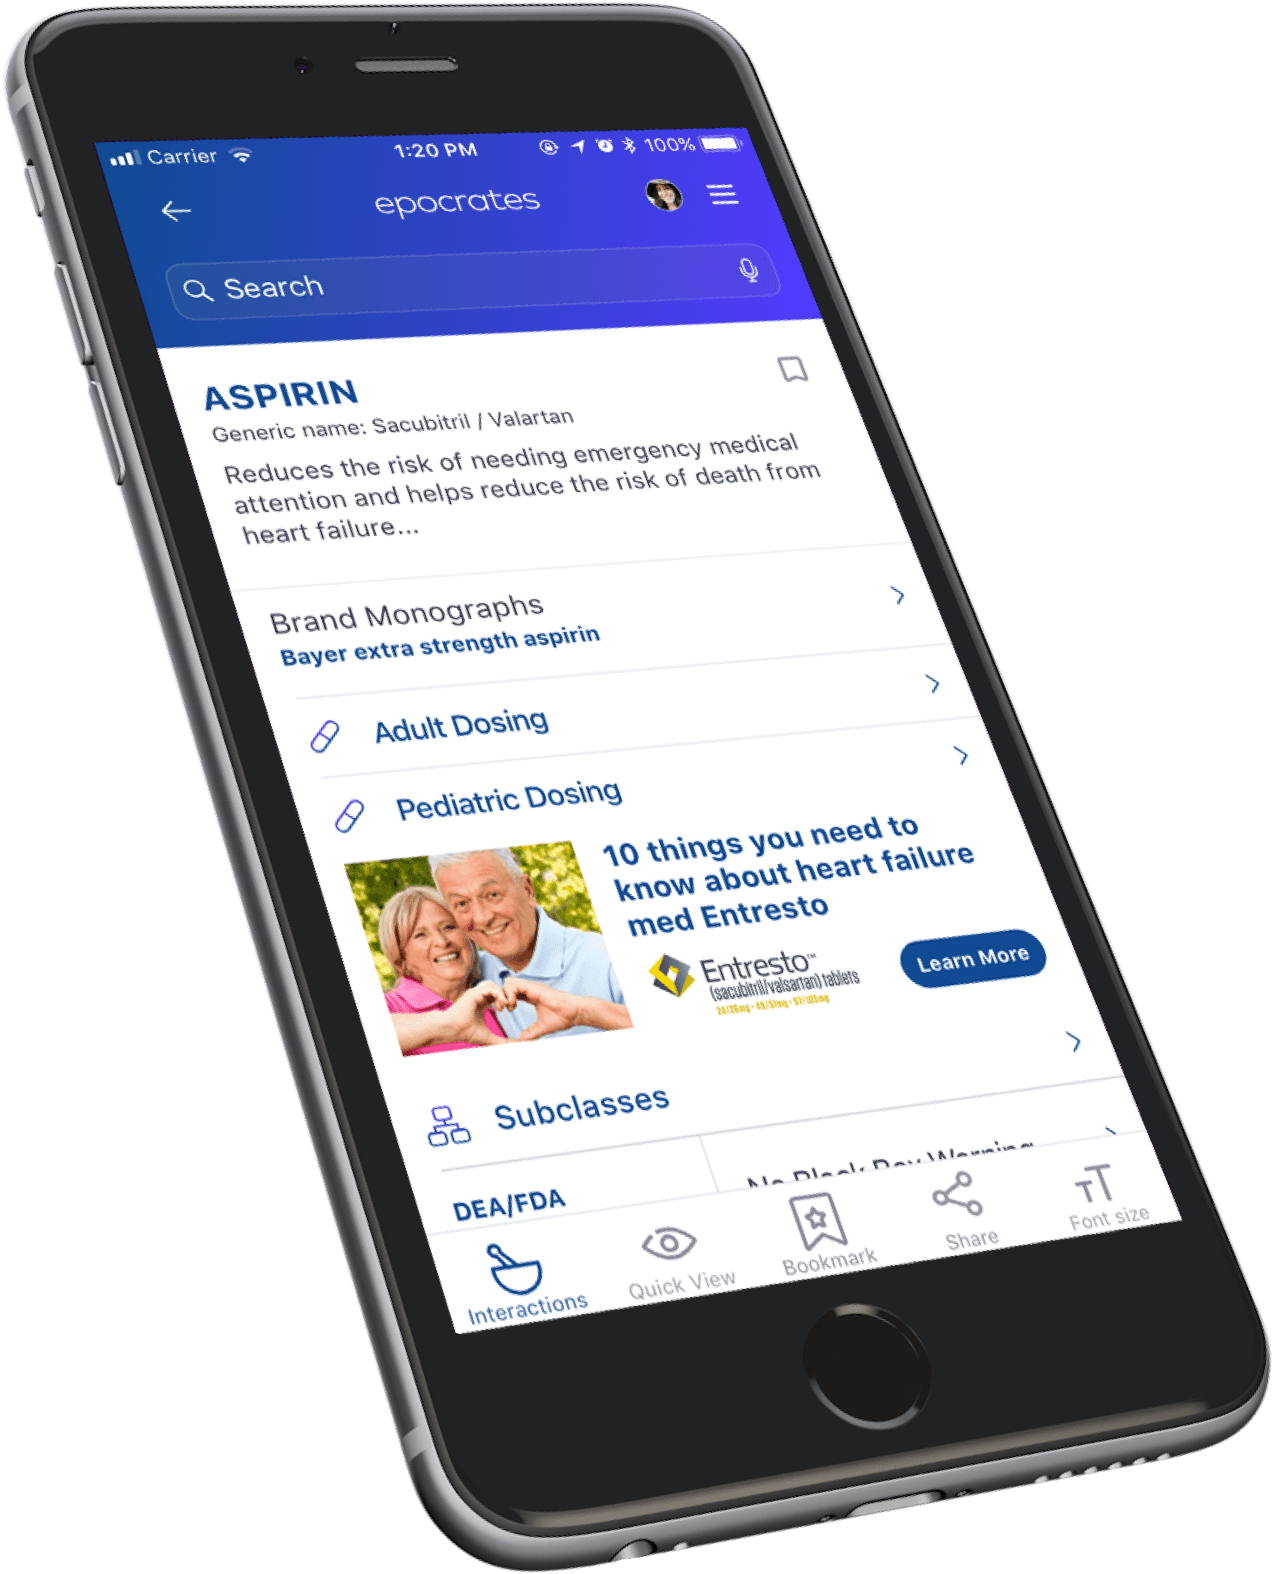 Example of healthcare information on Epocrates app shown on mobile device